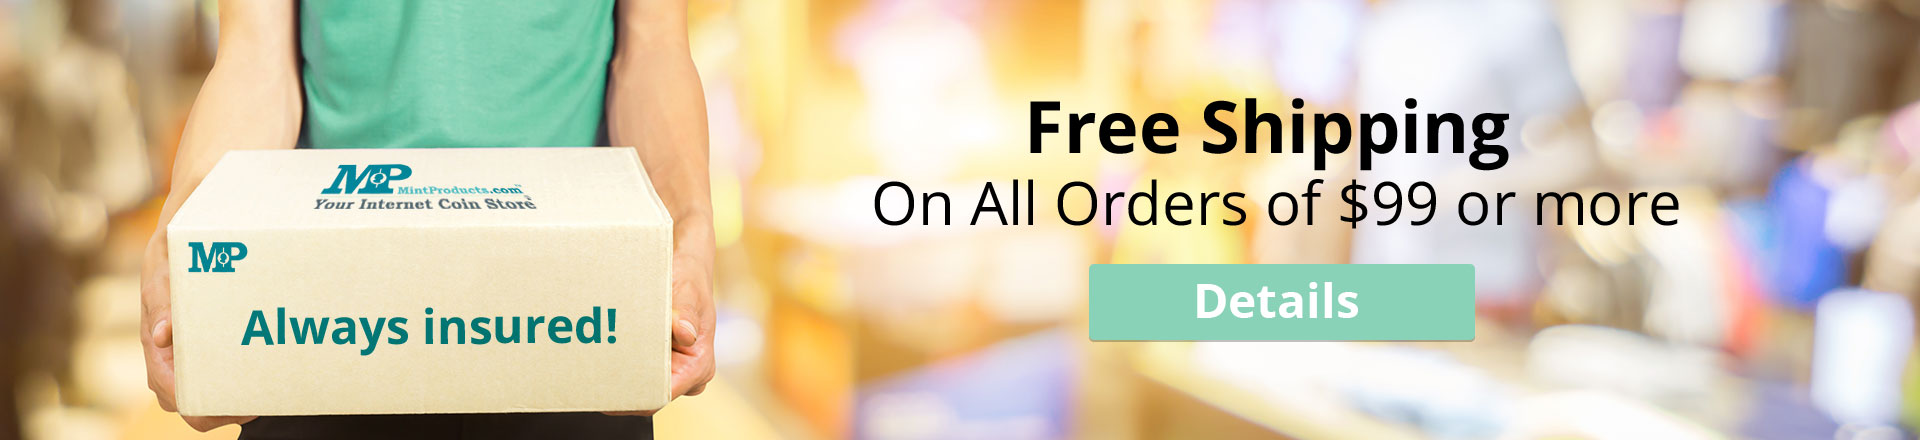 Free Shipping on orders of $99 or more at MintProducts